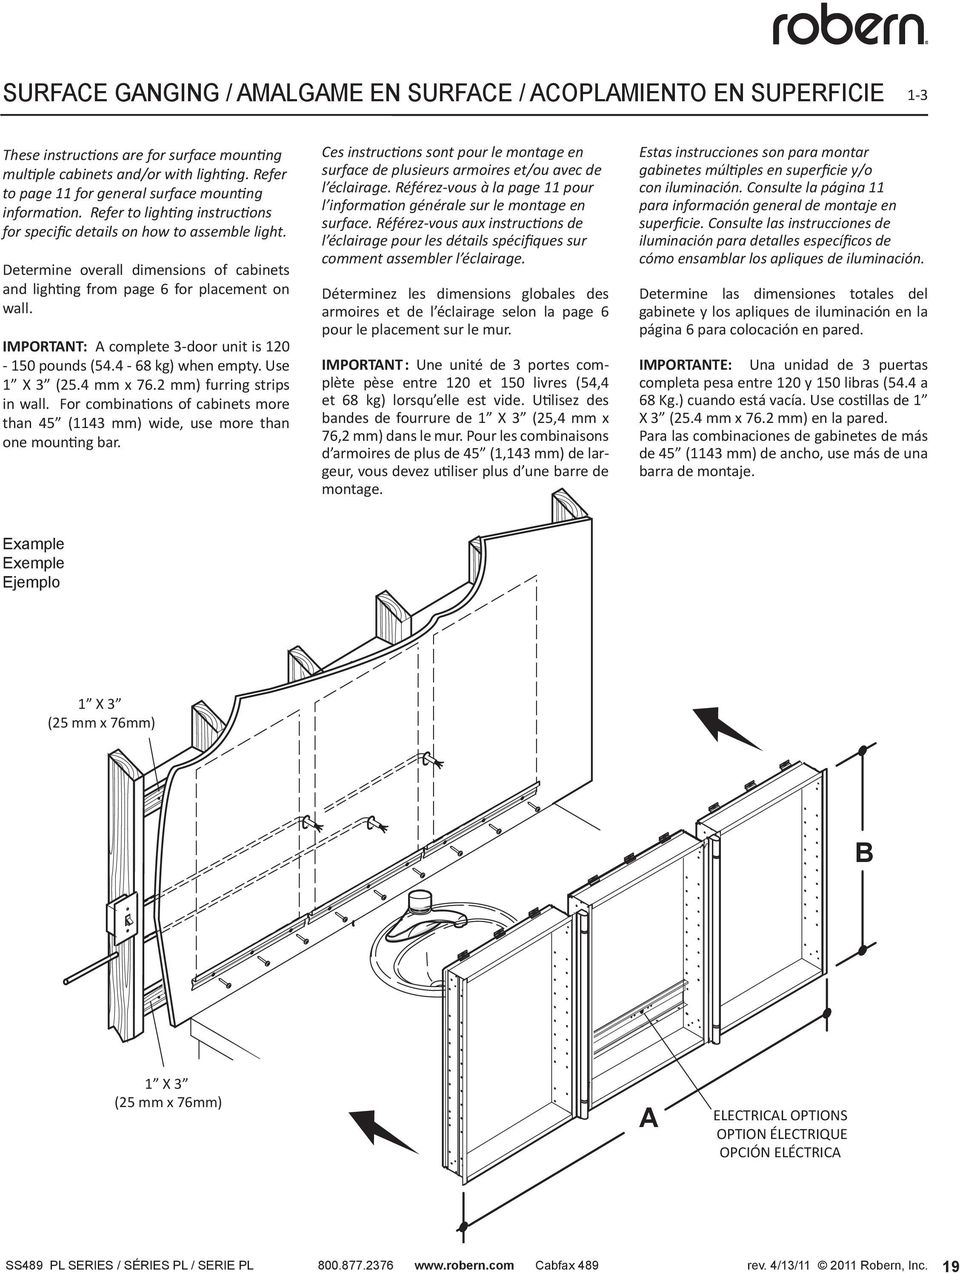 Determine overall dimensions of cabinets and lighting from page 6 for placement on wall. IMPORTANT: A complete 3-door unit is 120-150 pounds (54.4-68 kg) when empty. Use 1 X 3 (25.4 mm x 76.